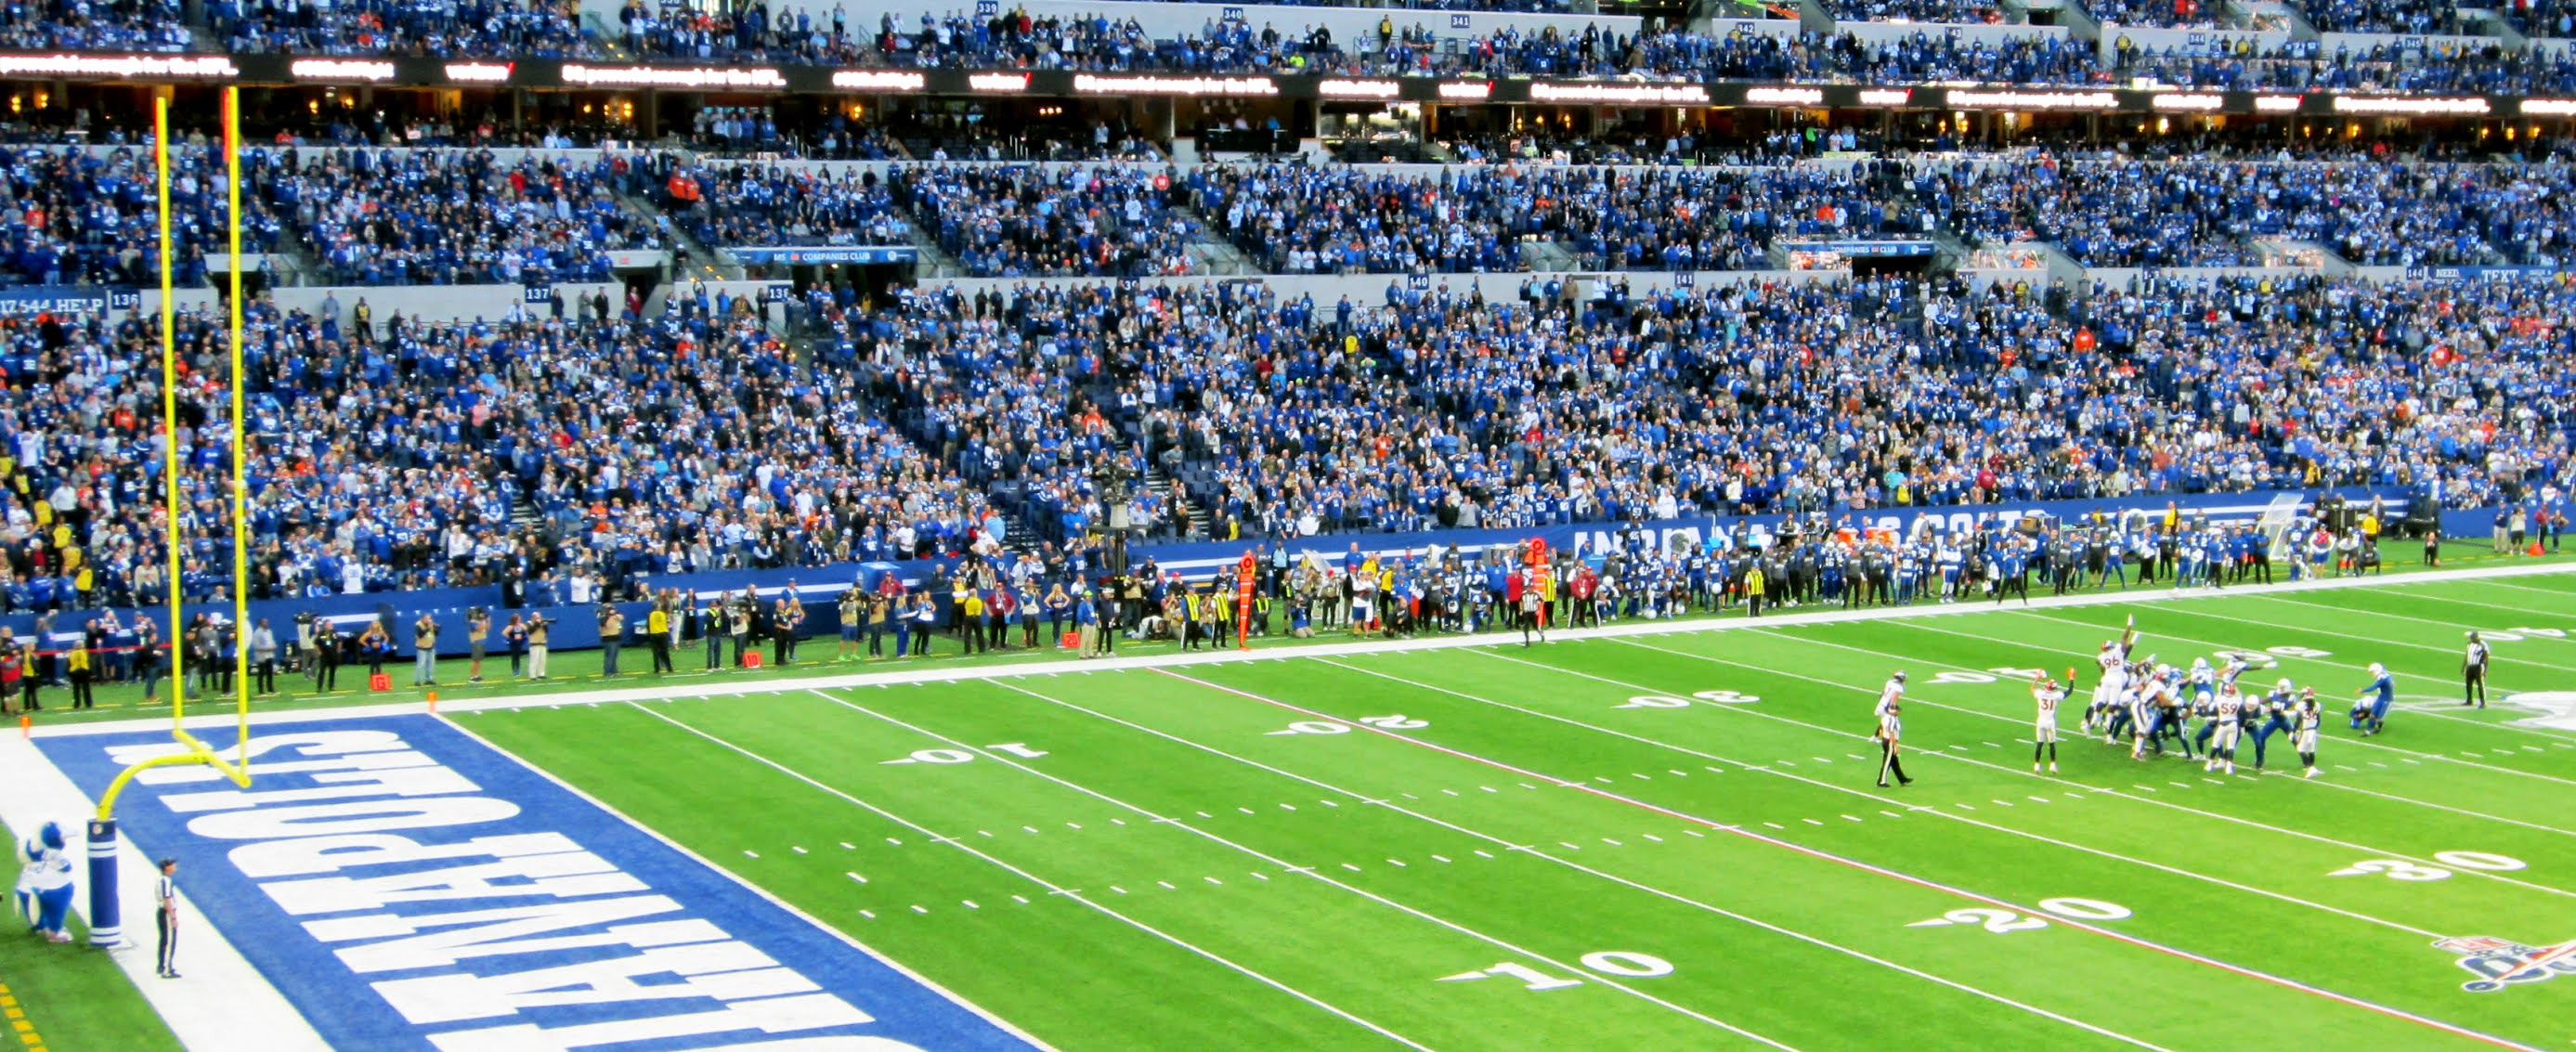 Adam Vinatieri kicking a game winning field goal for the Indianapolis Colts